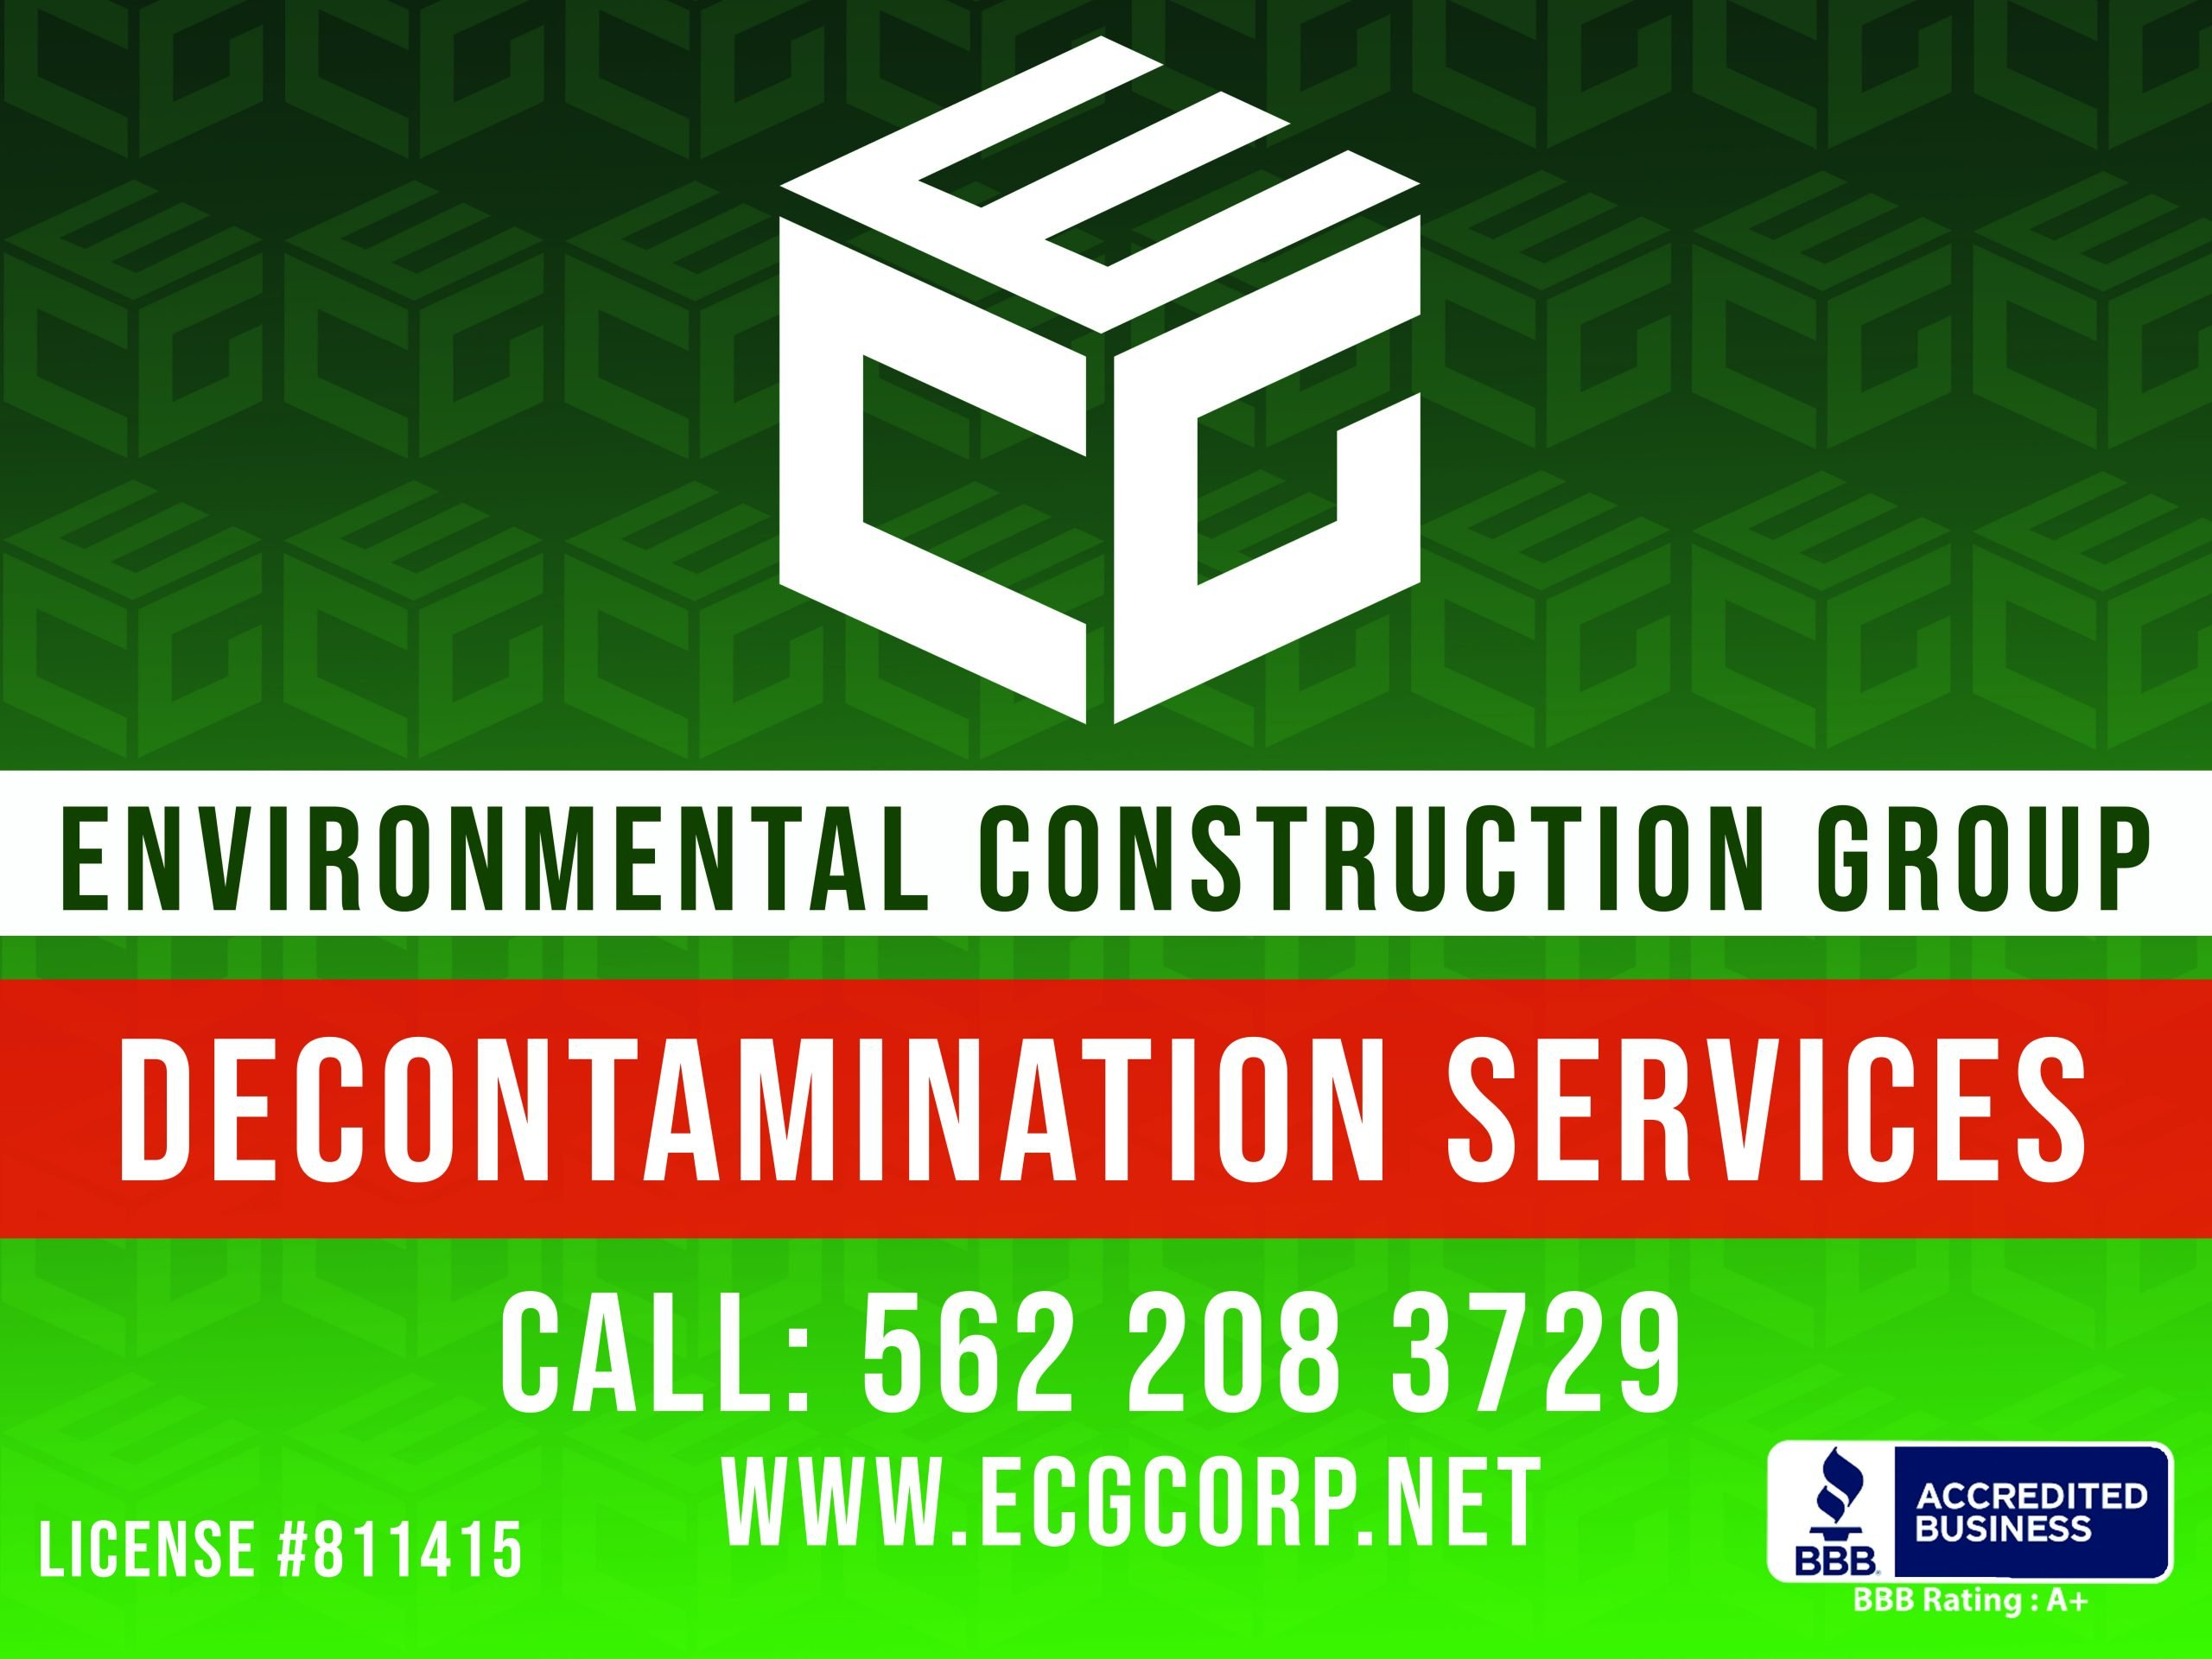 ENVIRONMENTAL CONSTRUCTION GROUP INC